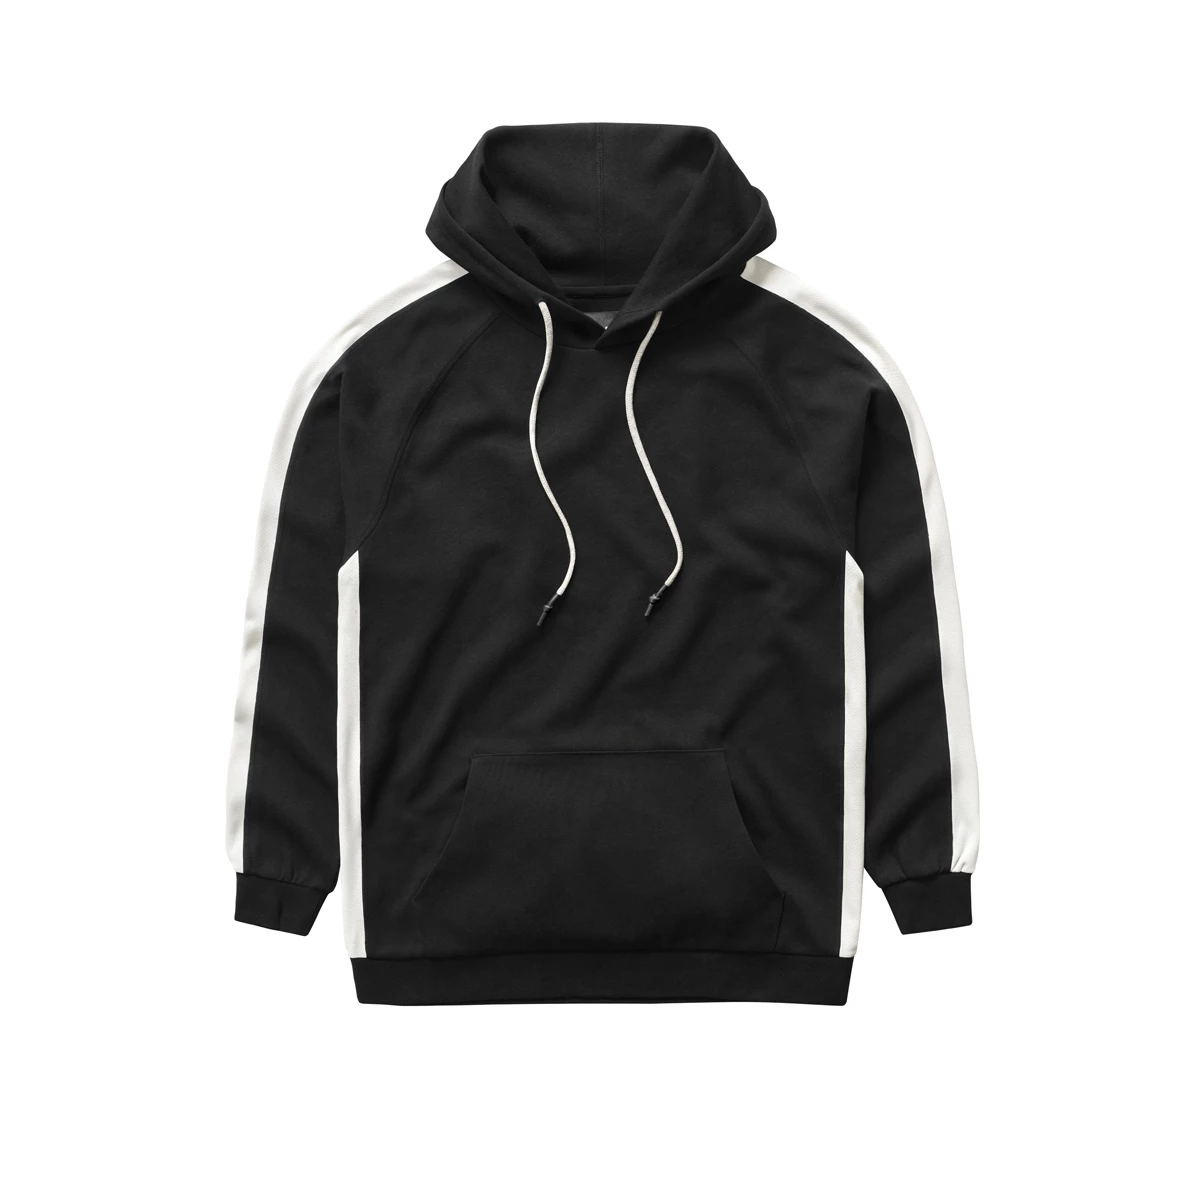 Top nice hoodies for men factory for female-3